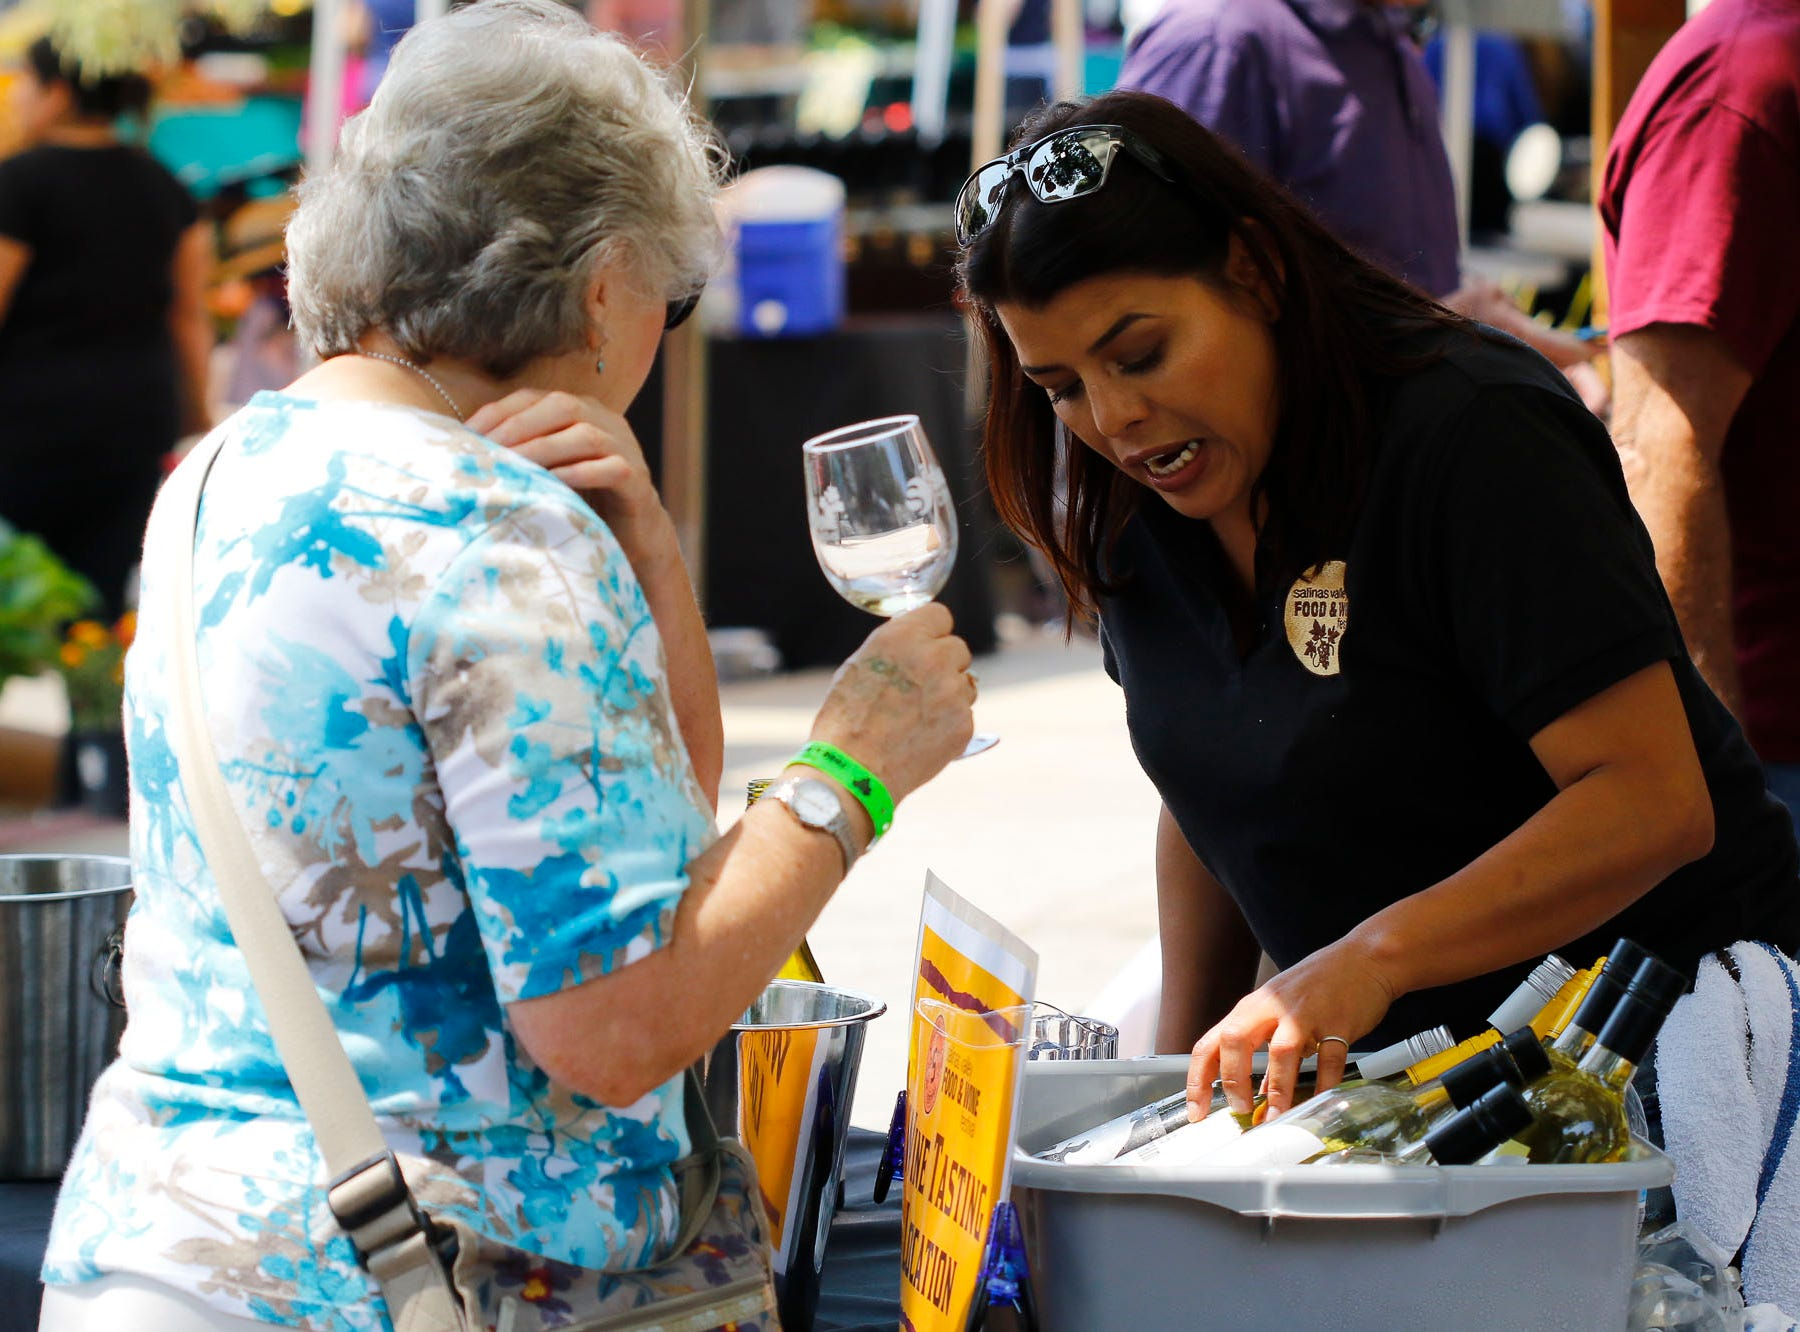 A woman working a sampling booth goes over bottles of wine with an attendee during the 2018 Salinas Valley Food and Wine Festival which takes place on Main Street in Old Town Salinas on Saturday, August 11, 2018.